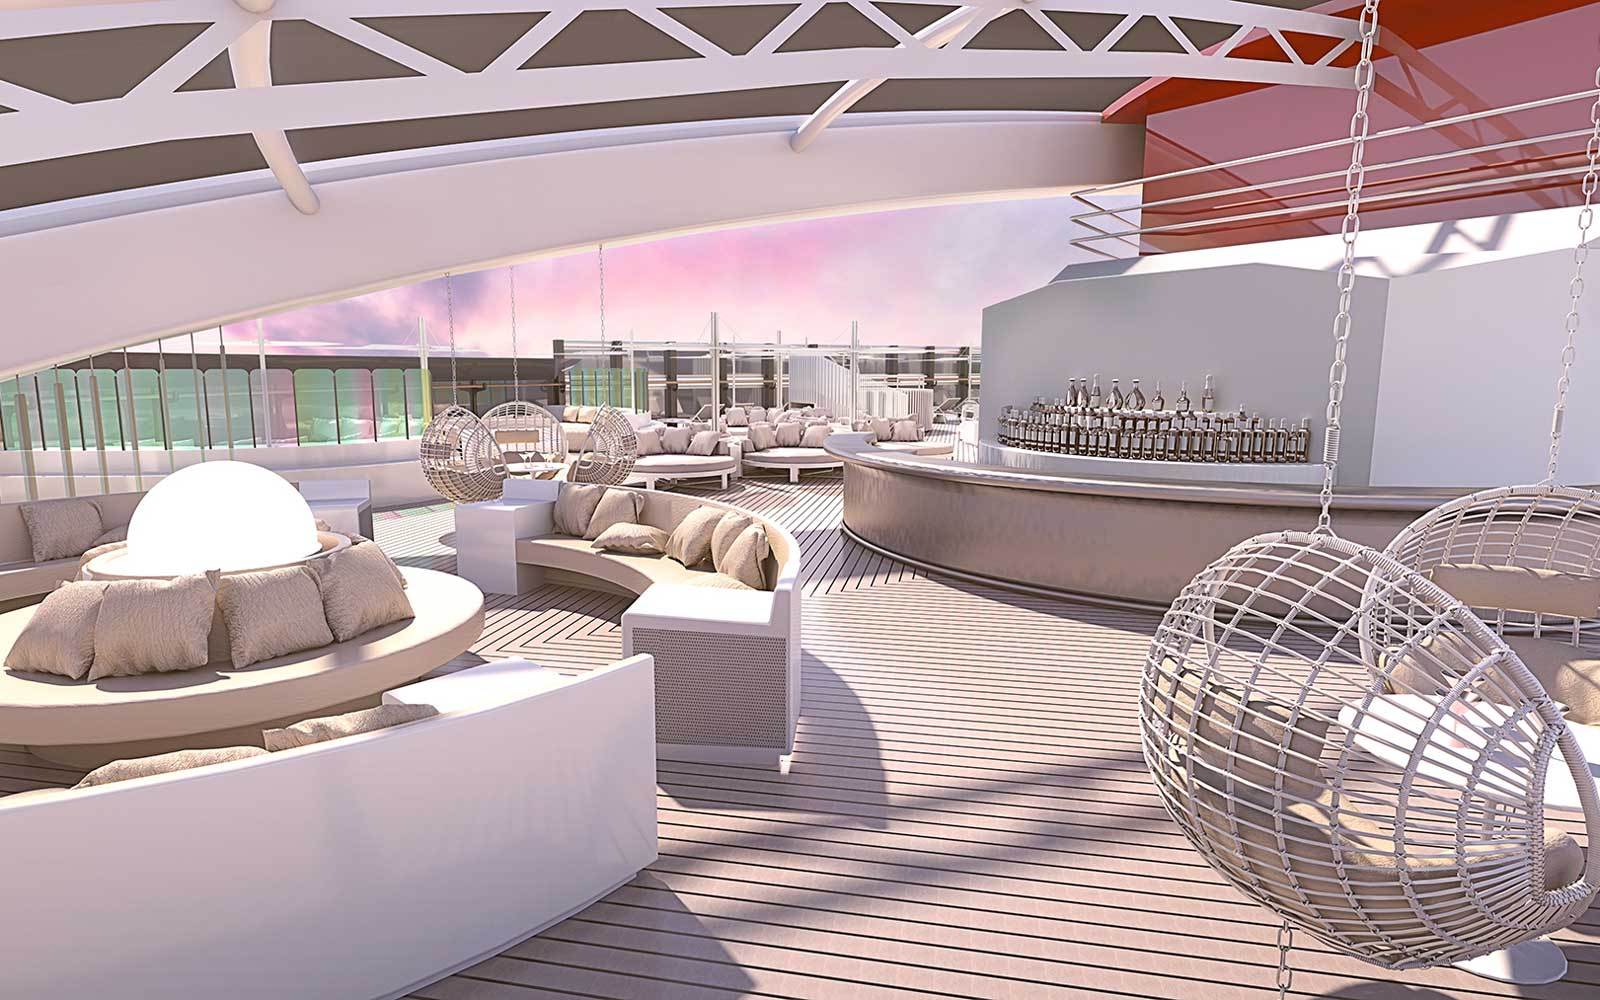 Rendering of Richard's roof deck on board Virgin Voyages ship